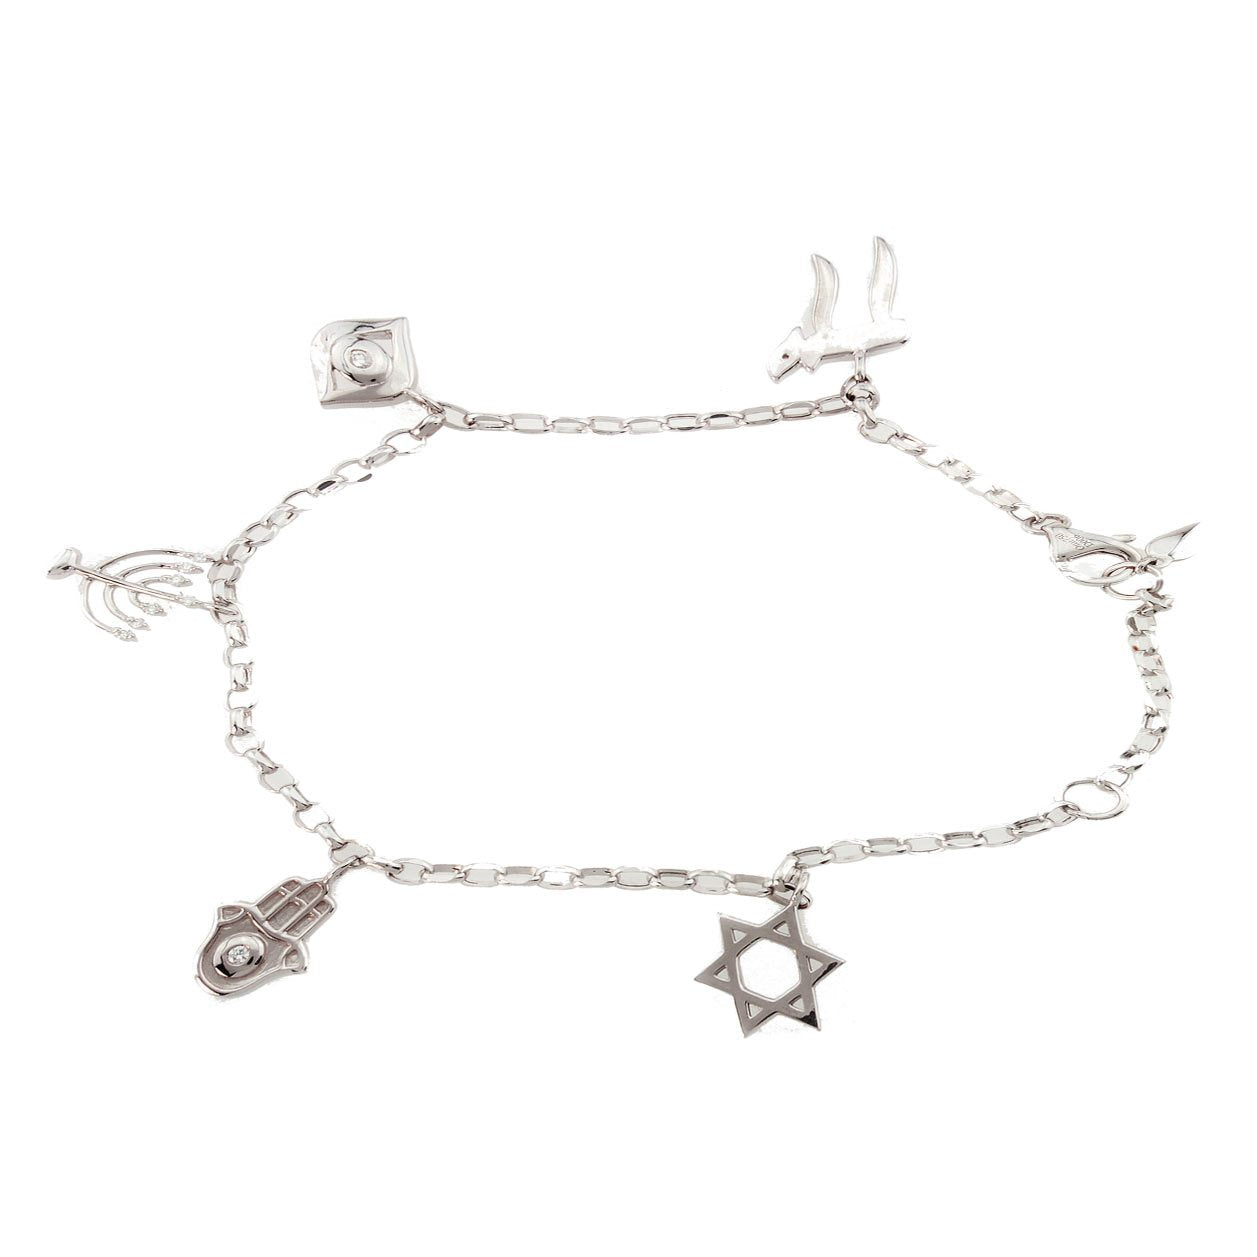 18K White Gold Diamond Charm Bracelet with Jewish Motifs 0.06CT